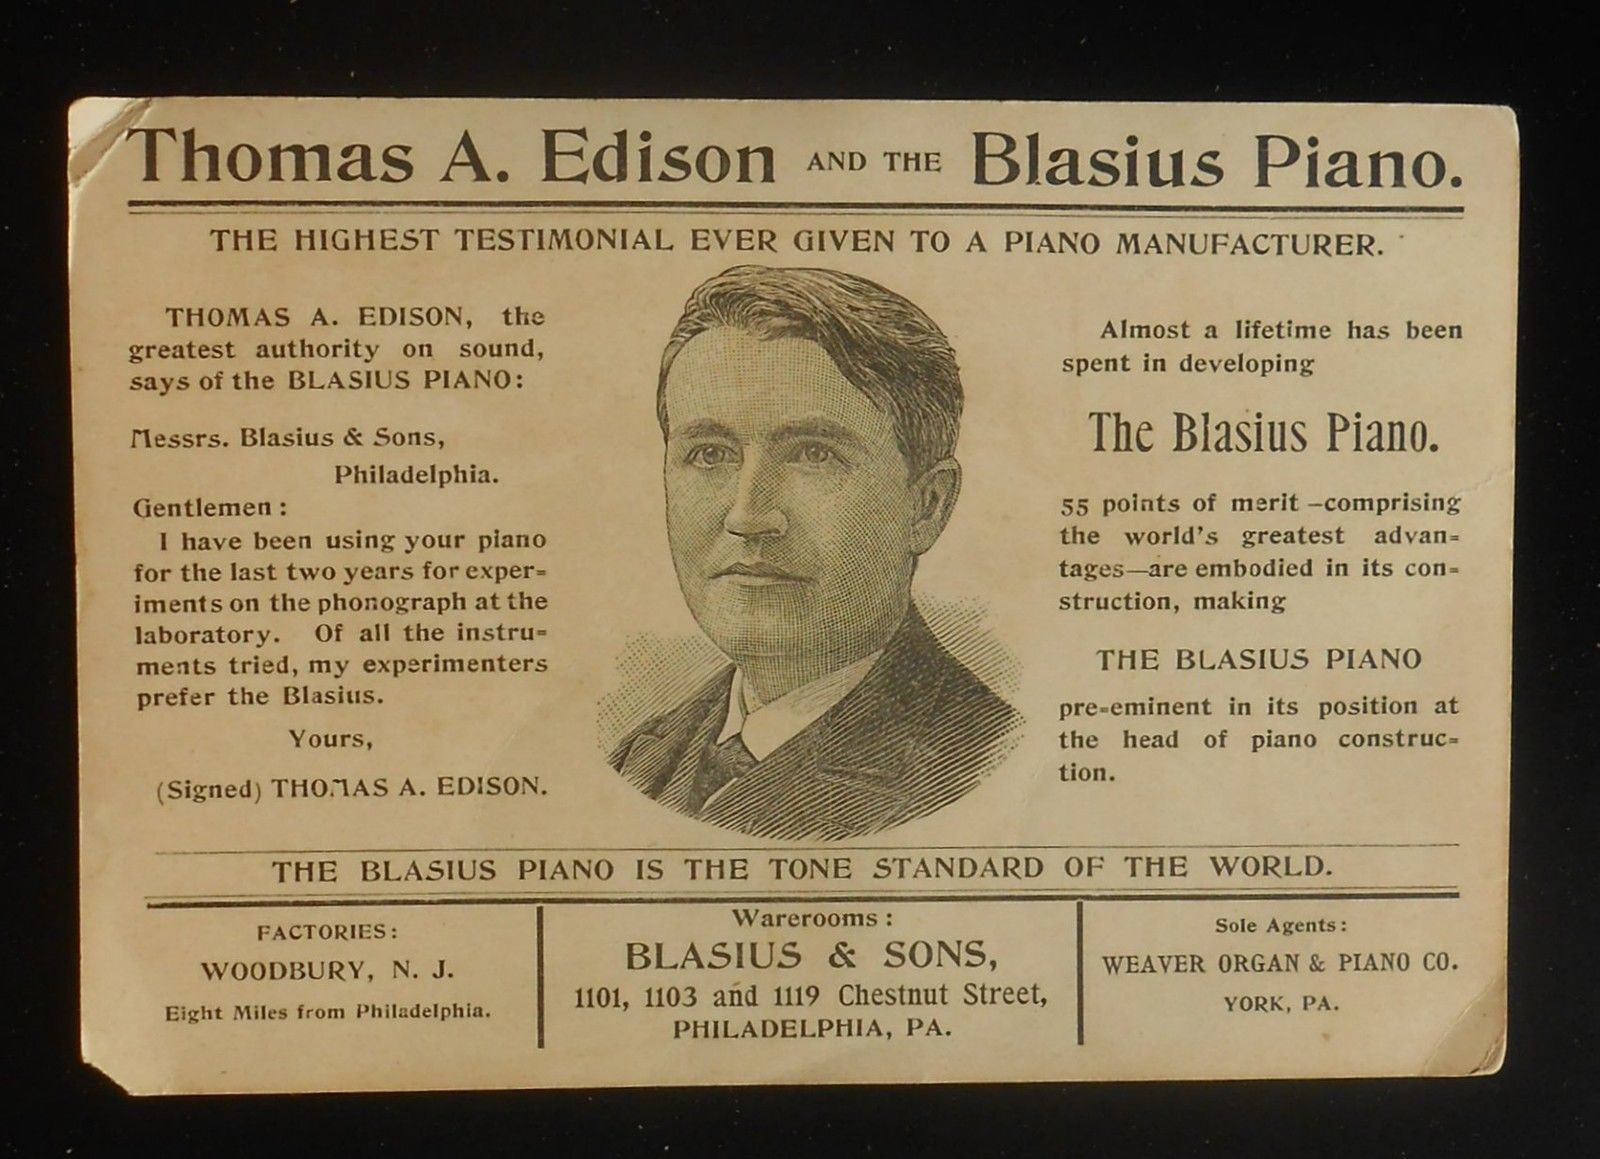 Village green preservation society blasius sons piano works a edison says my experiments prefer the blasius in tone finish workmanship and construction the blasius piano surpasses all others xflitez Images